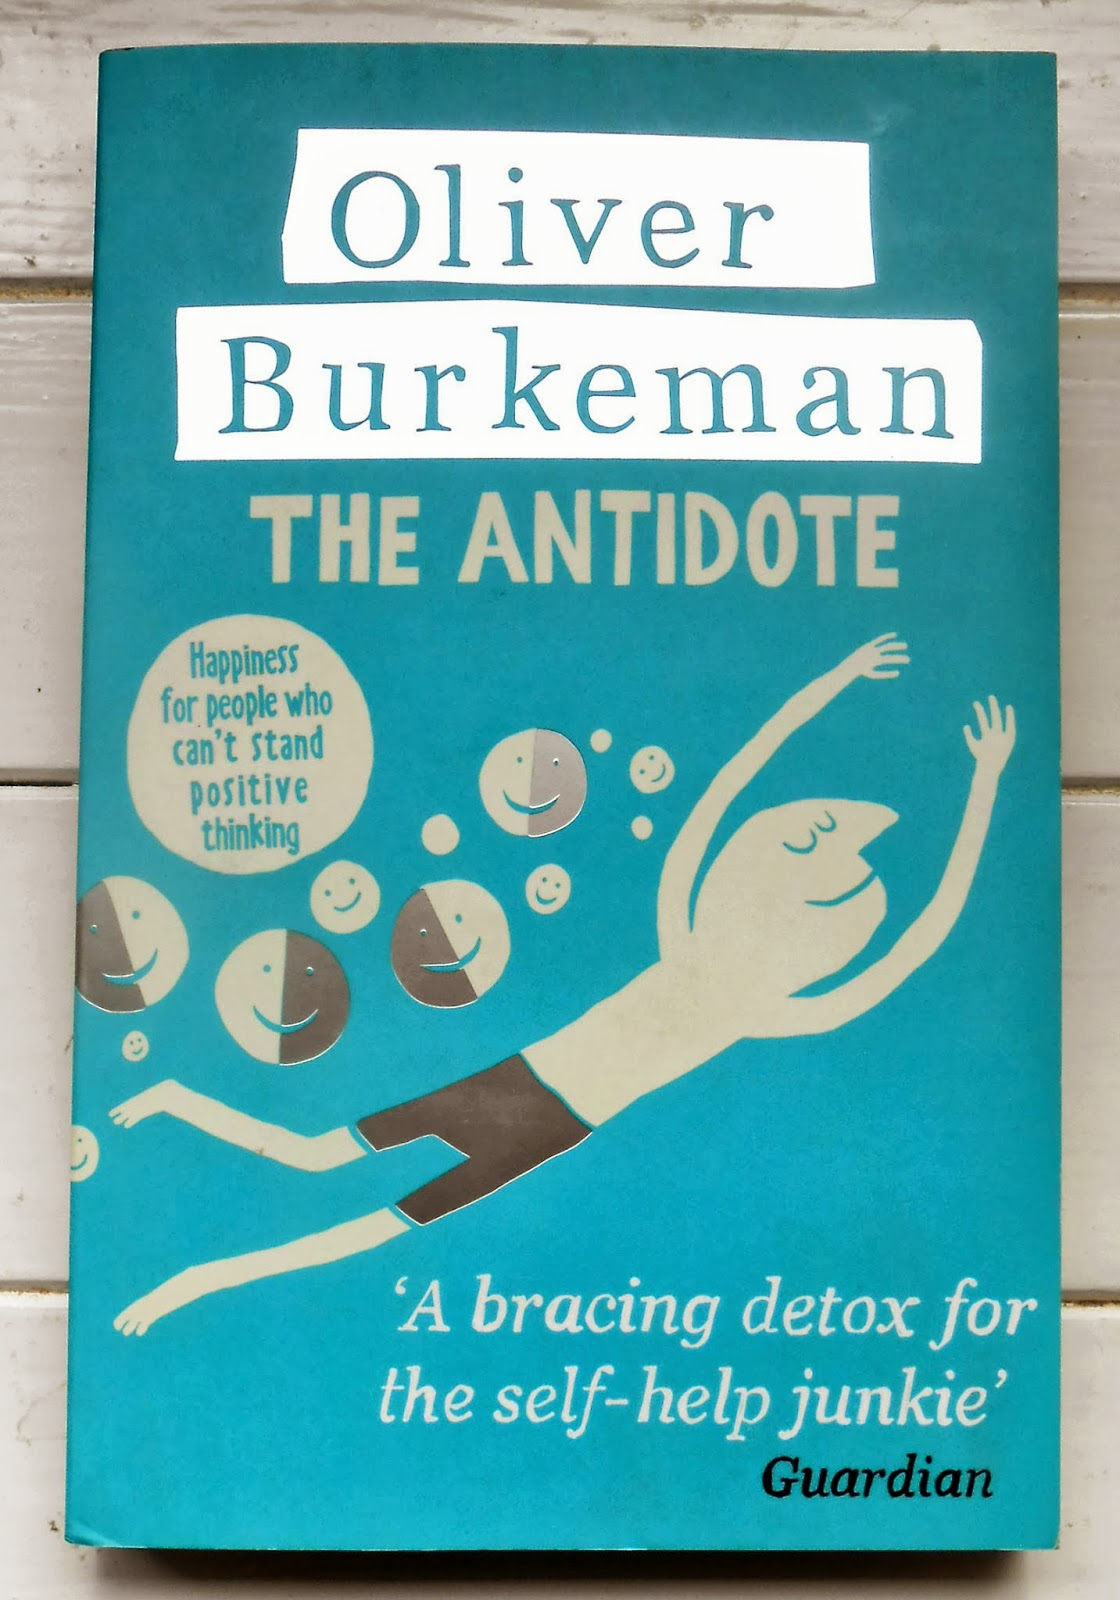 Cover of The Antidote by Oliver Burkeman